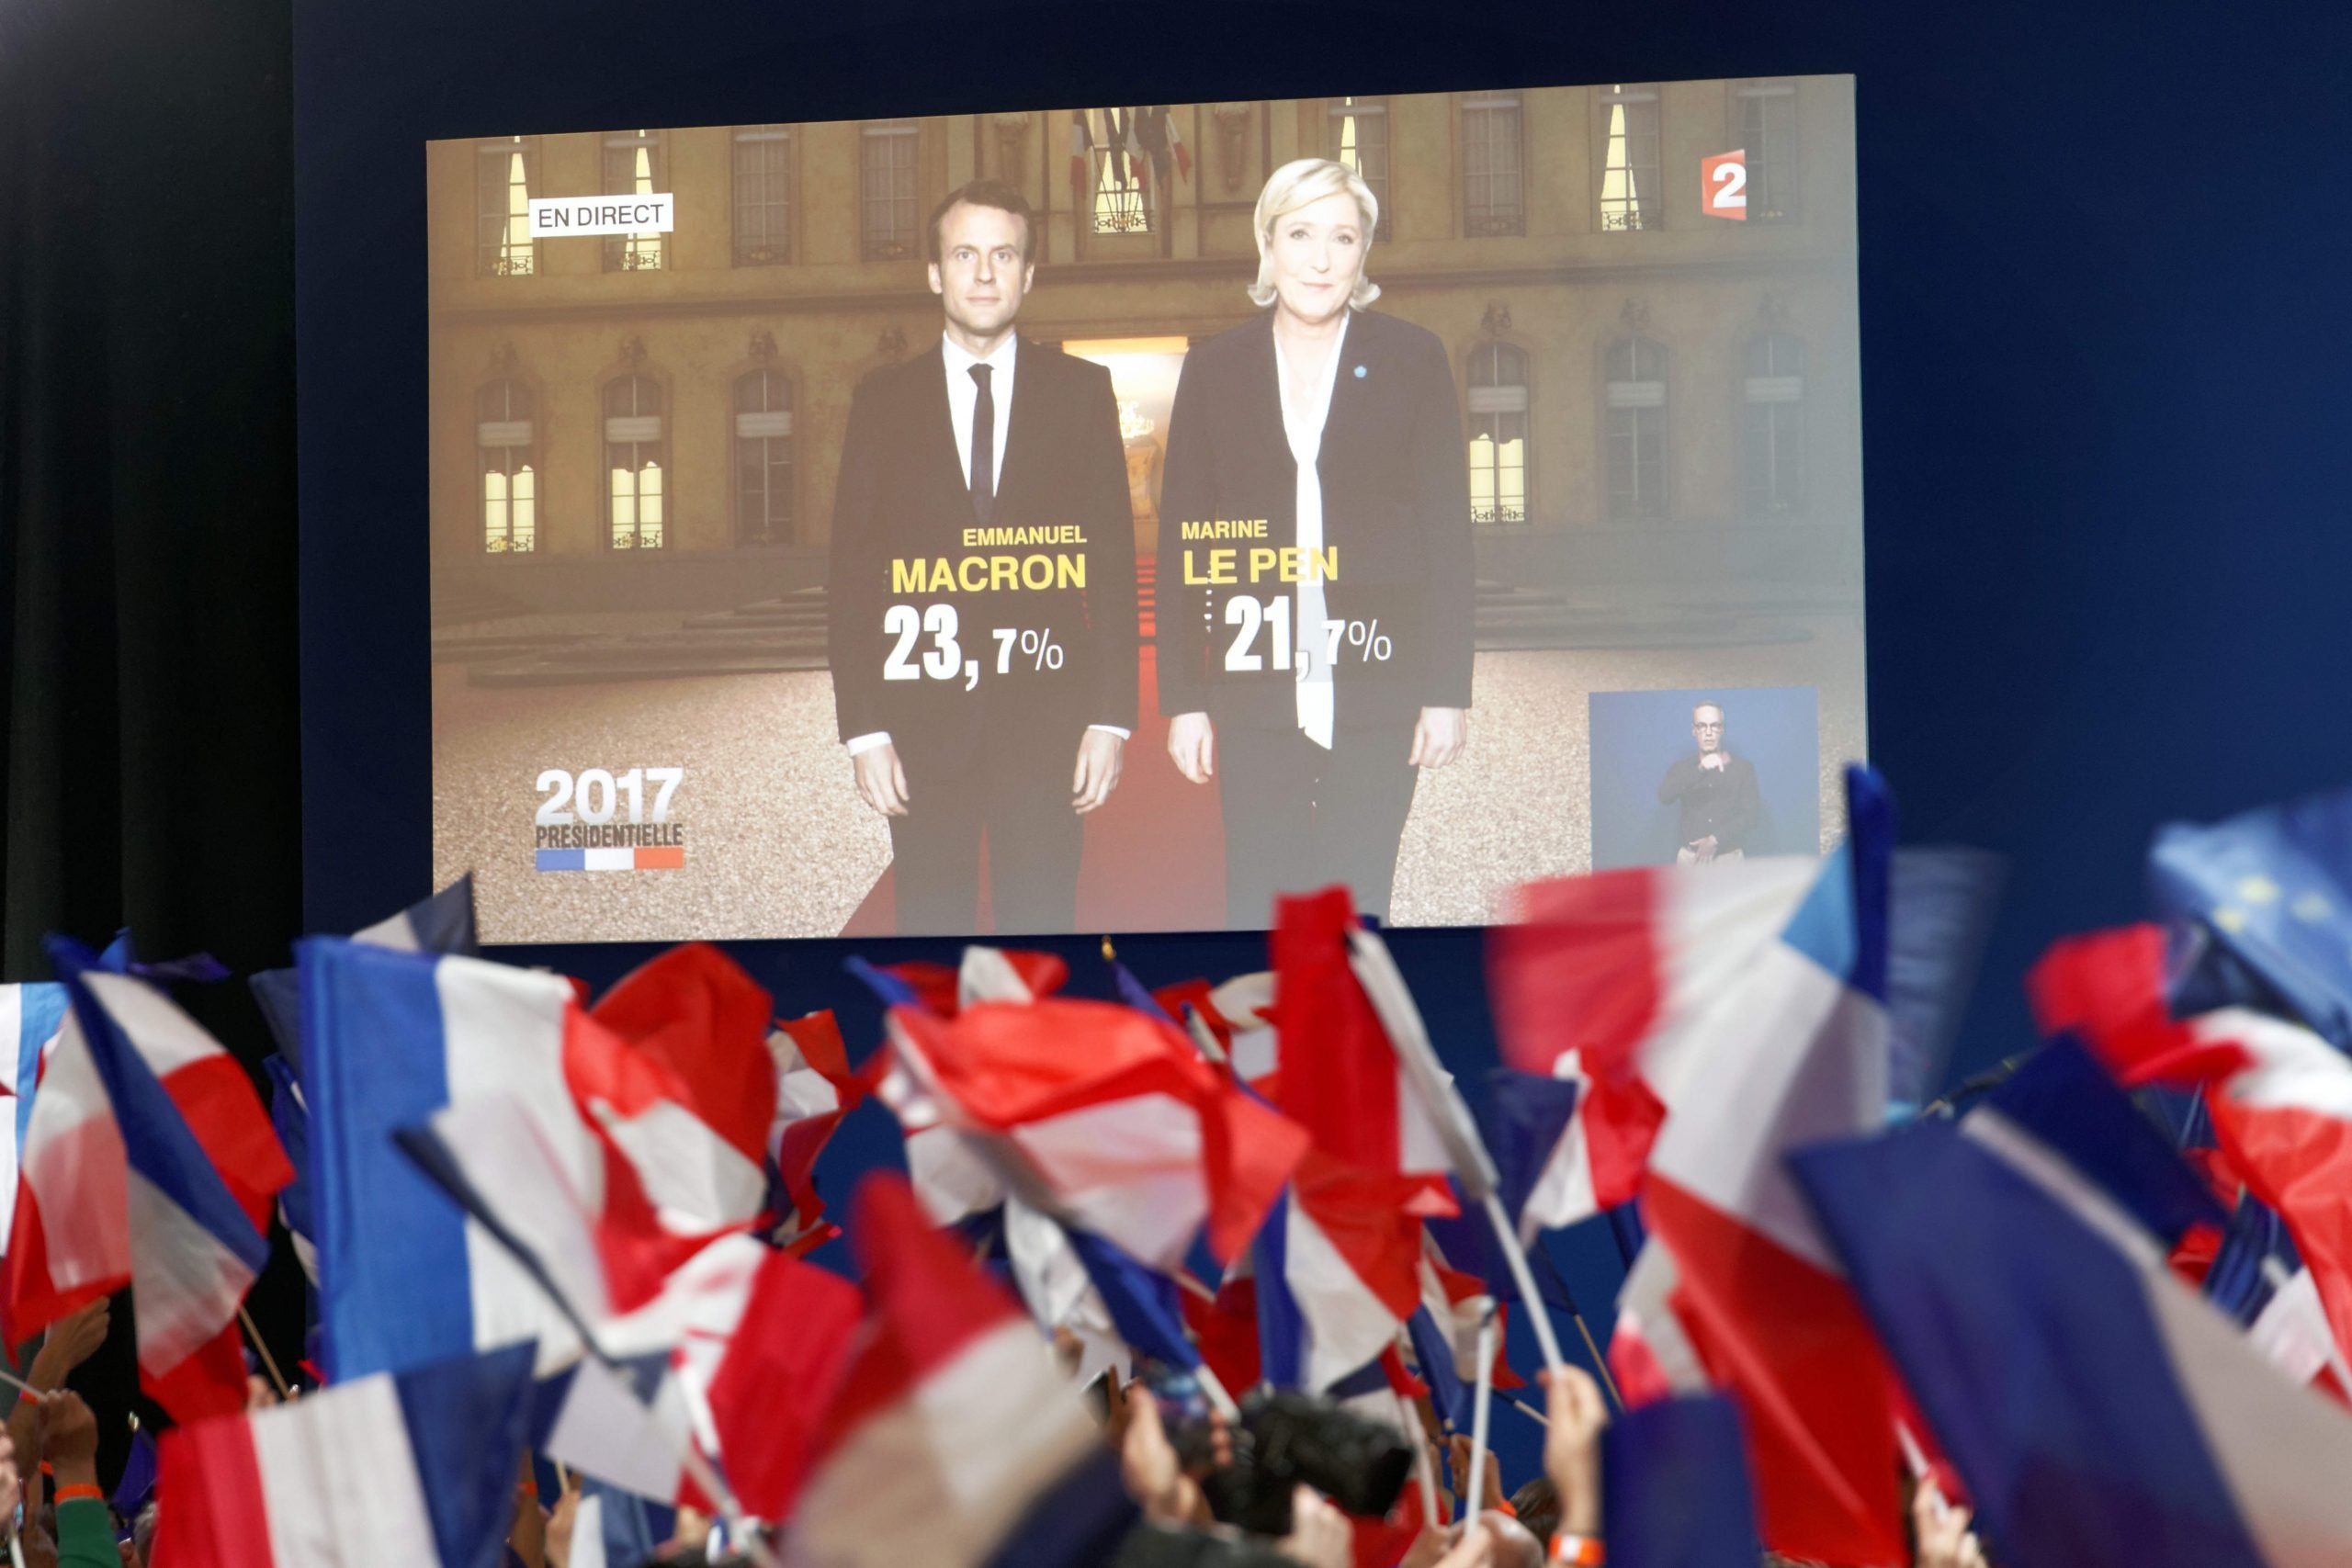 Fascist vs Opportunist? Don't underestimate French disgust for their political class